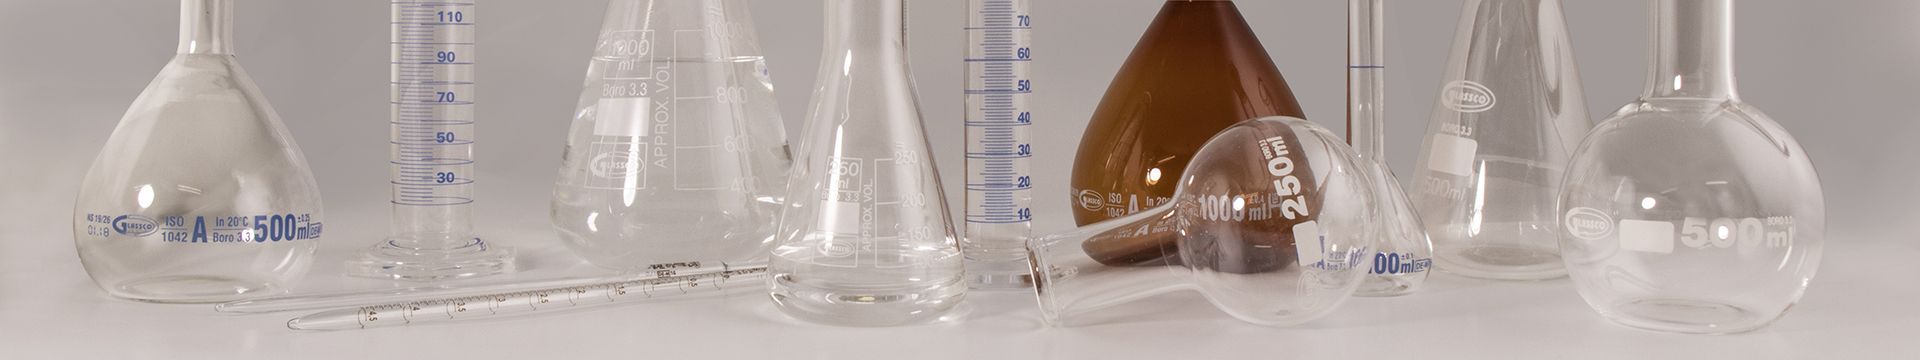 VOLUMETRIC GLASSWARE